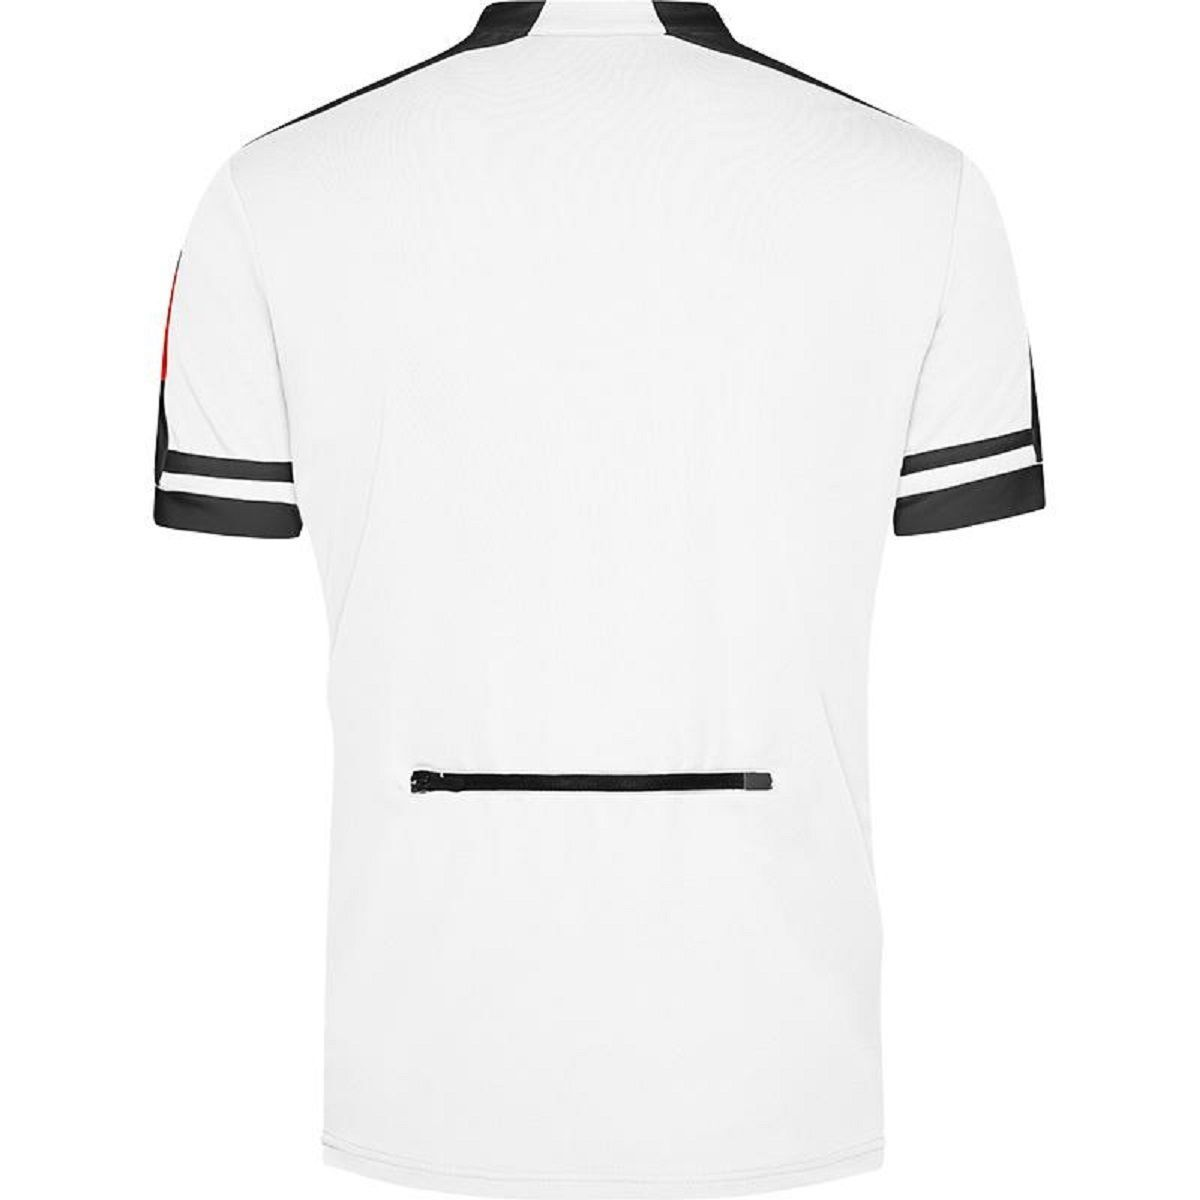 maillot cycliste - homme - JN452 - blanc